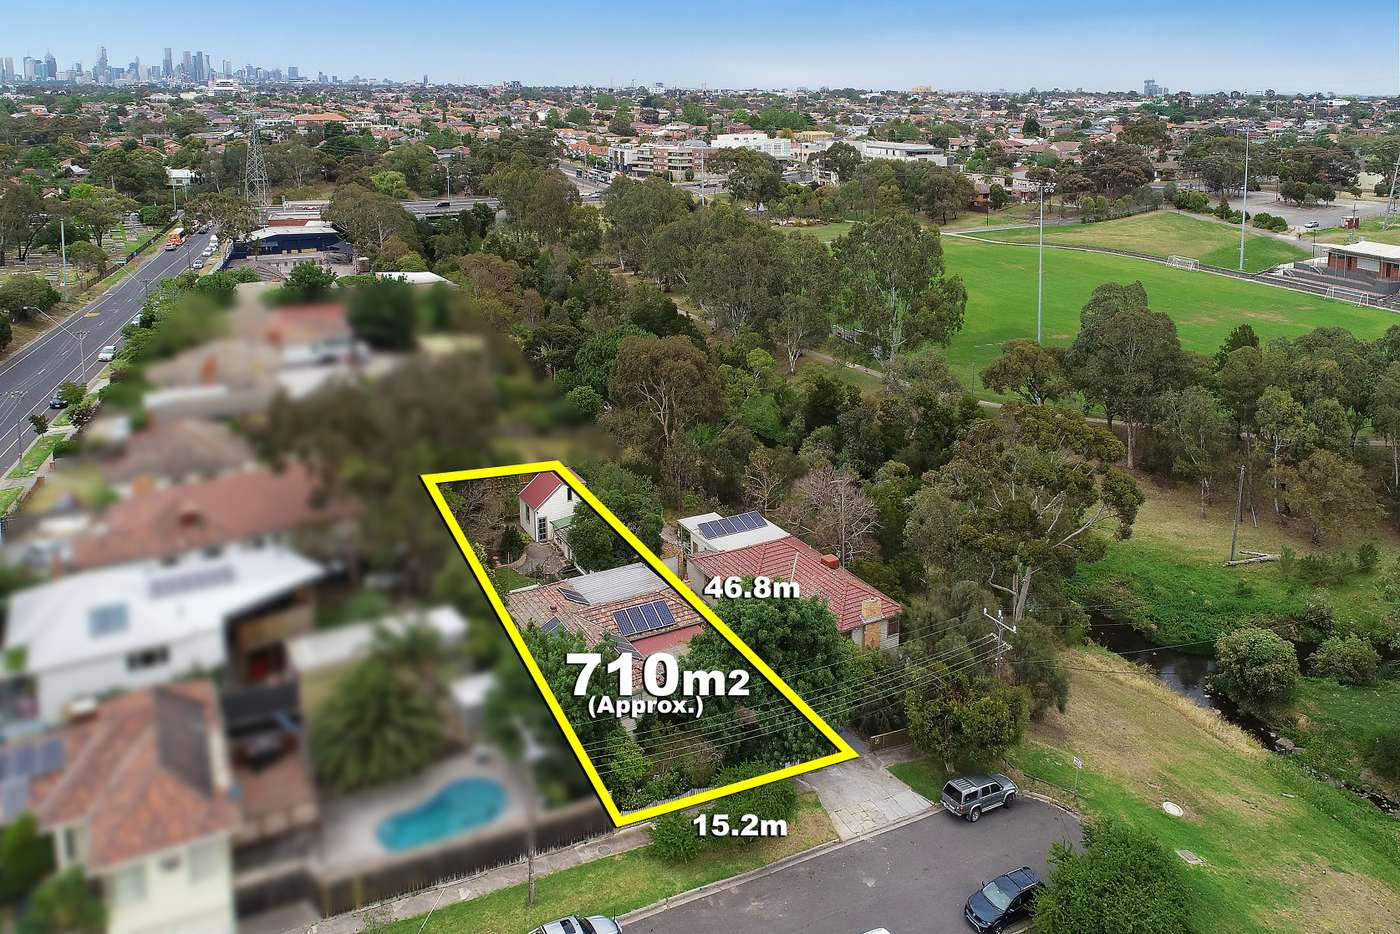 Main view of Homely house listing, 1 Booth Street, Coburg VIC 3058